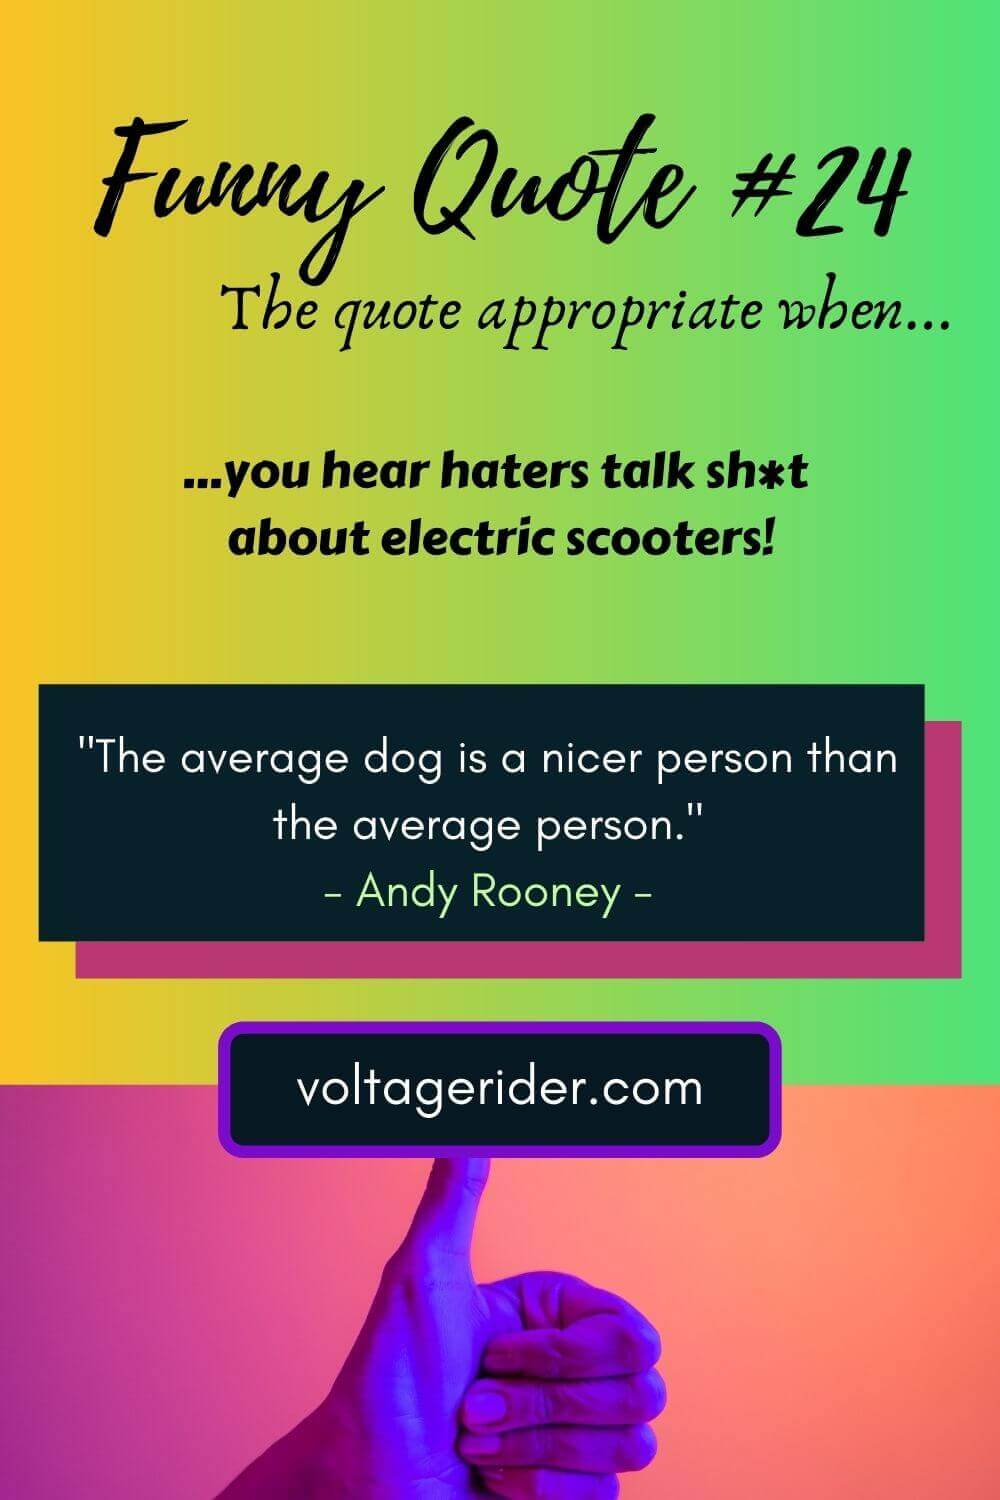 Voltage Rider Pinterest Image - Electric Scooter quotes